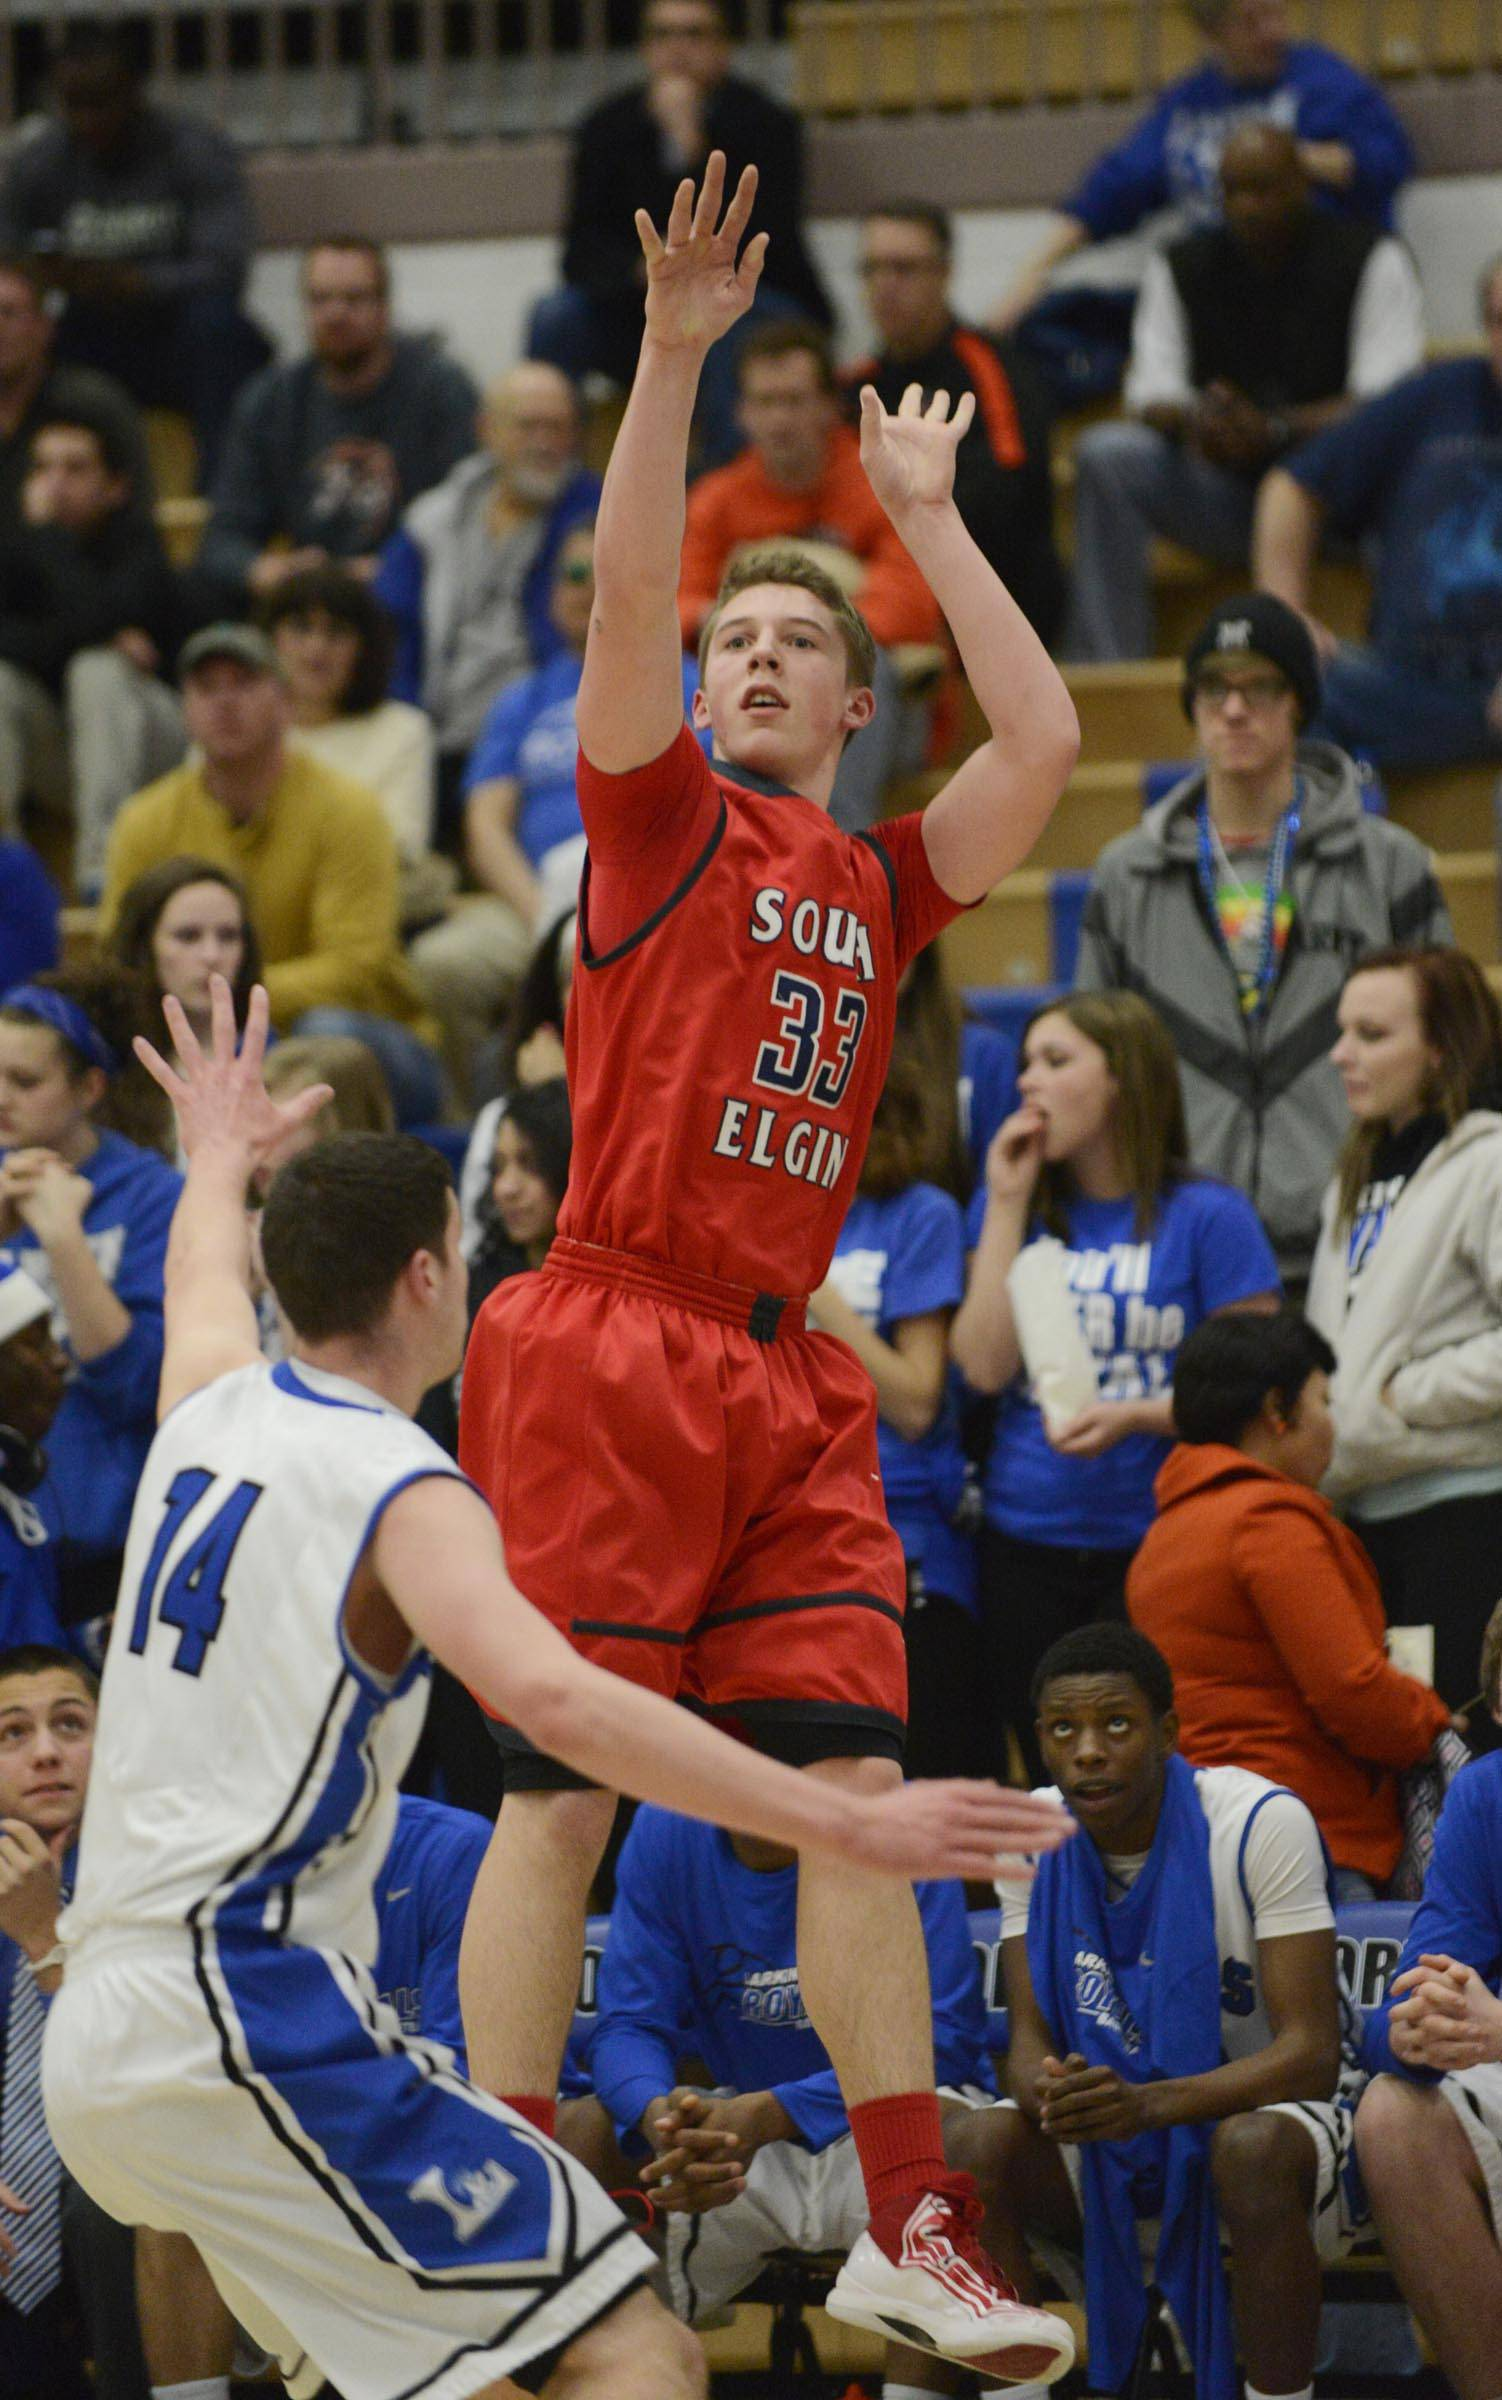 Images from the Larkin vs. South Elgin regional boys basketball matchup Tuesday, March 4, 2014.